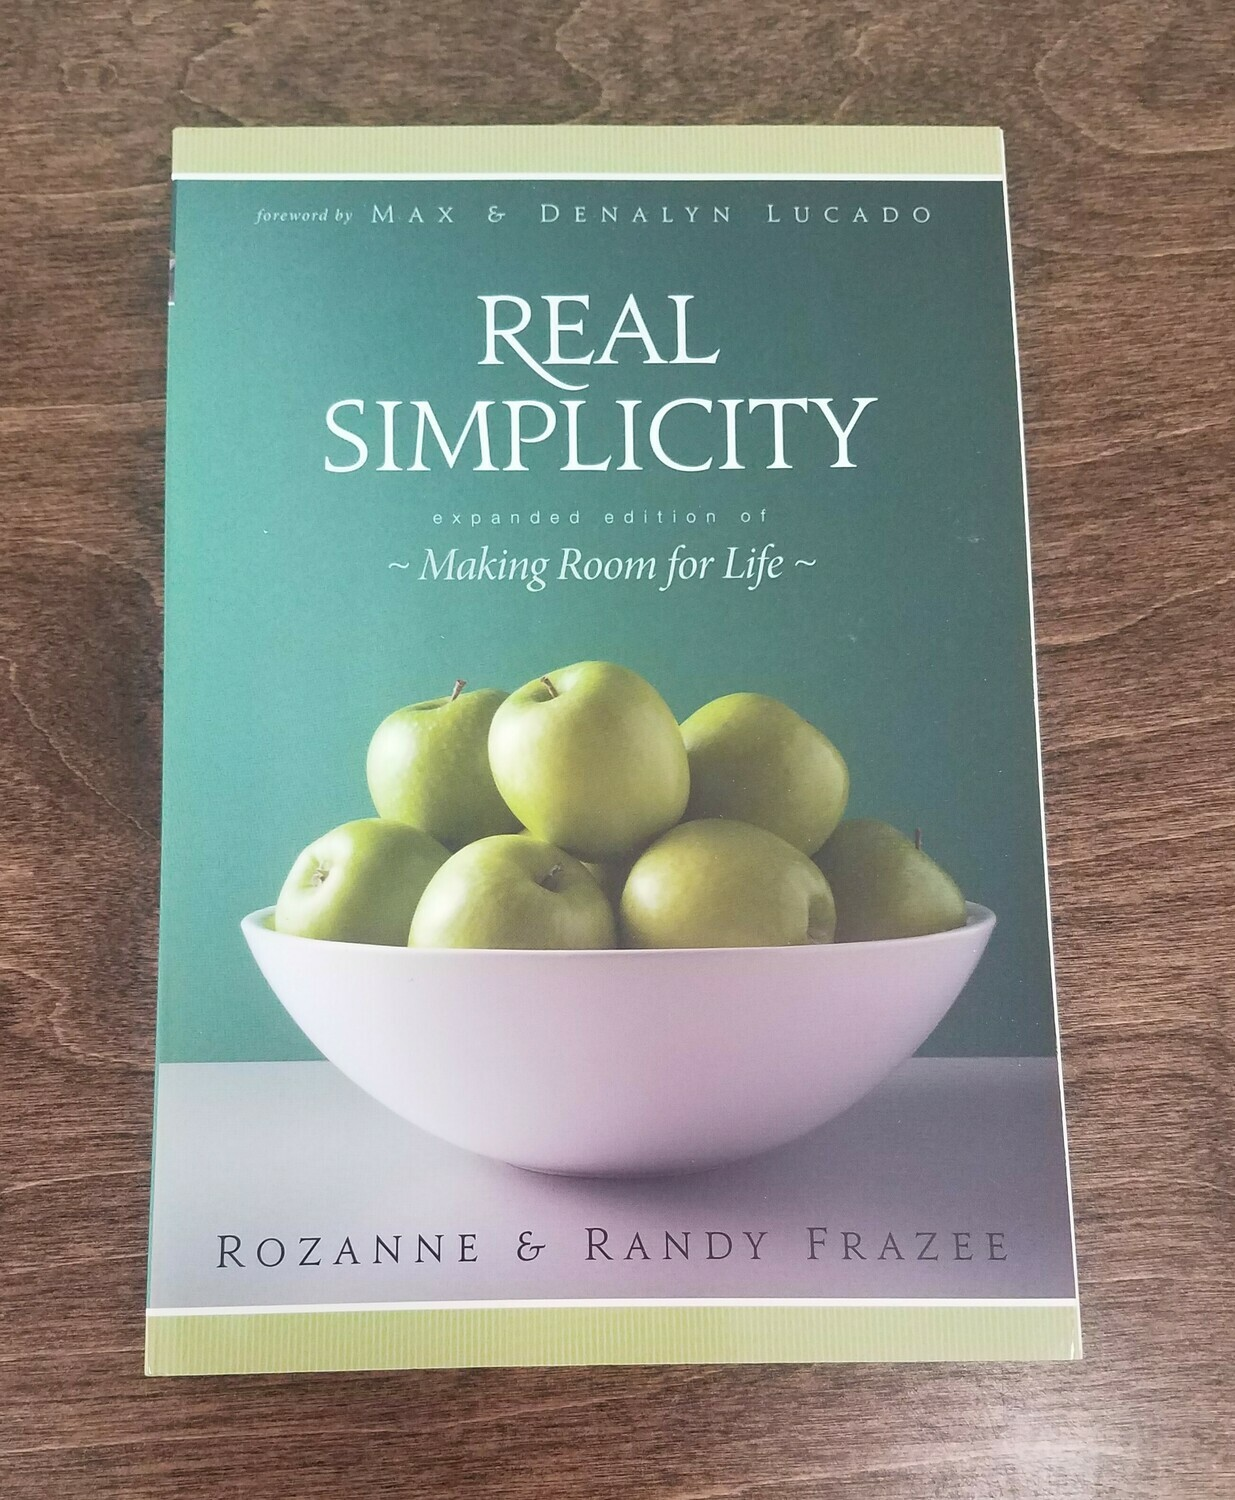 Real Simplicity by Rozanne and Randy Frazee